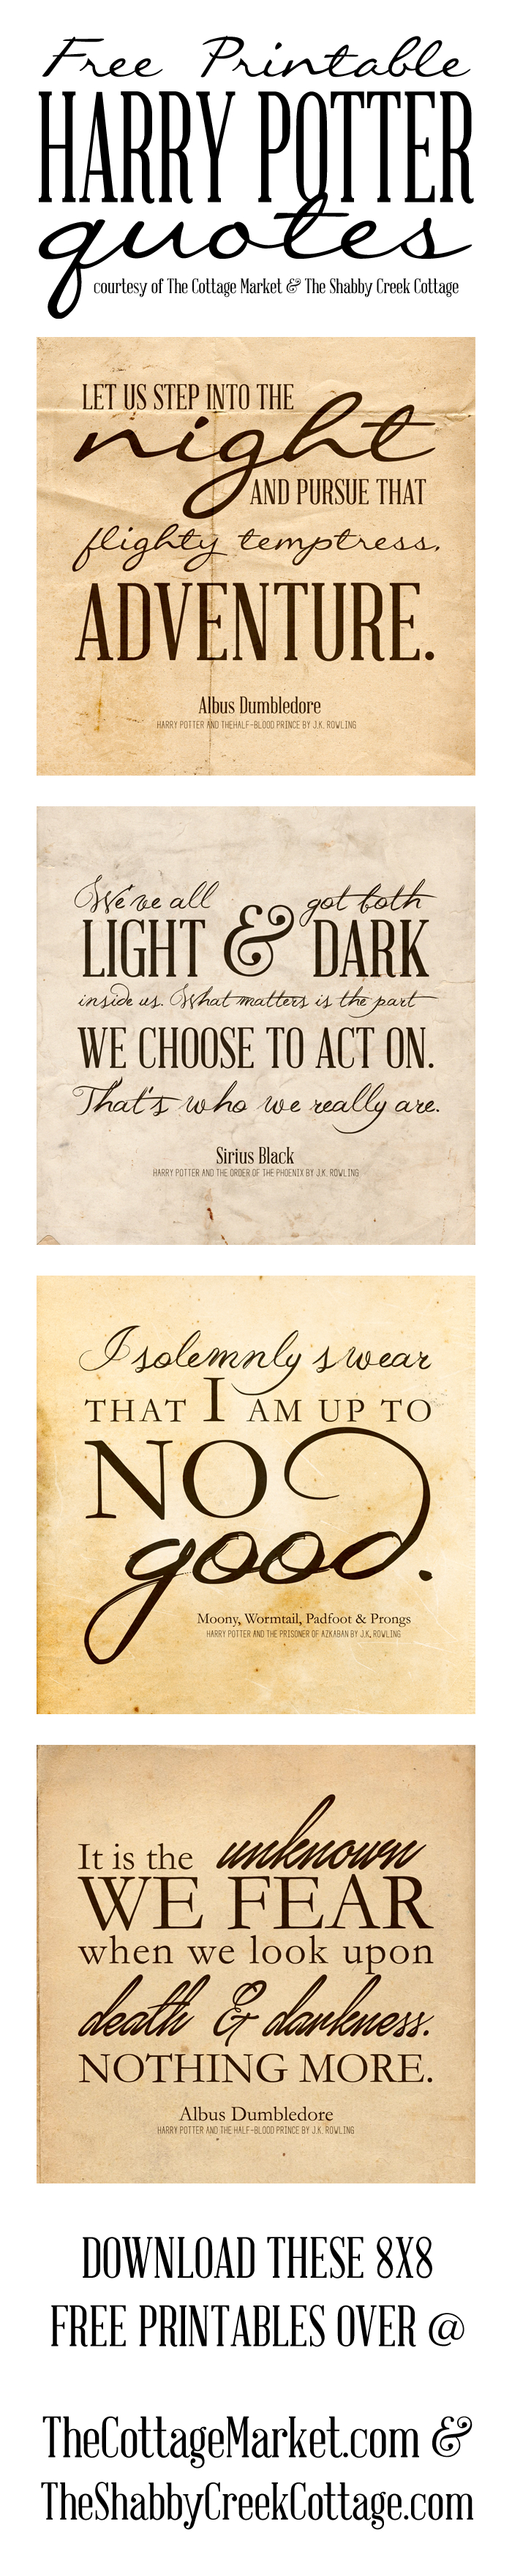 Free Printable Harry Potter Quotes | The Cottage Market - Free Printable Harry Potter Posters